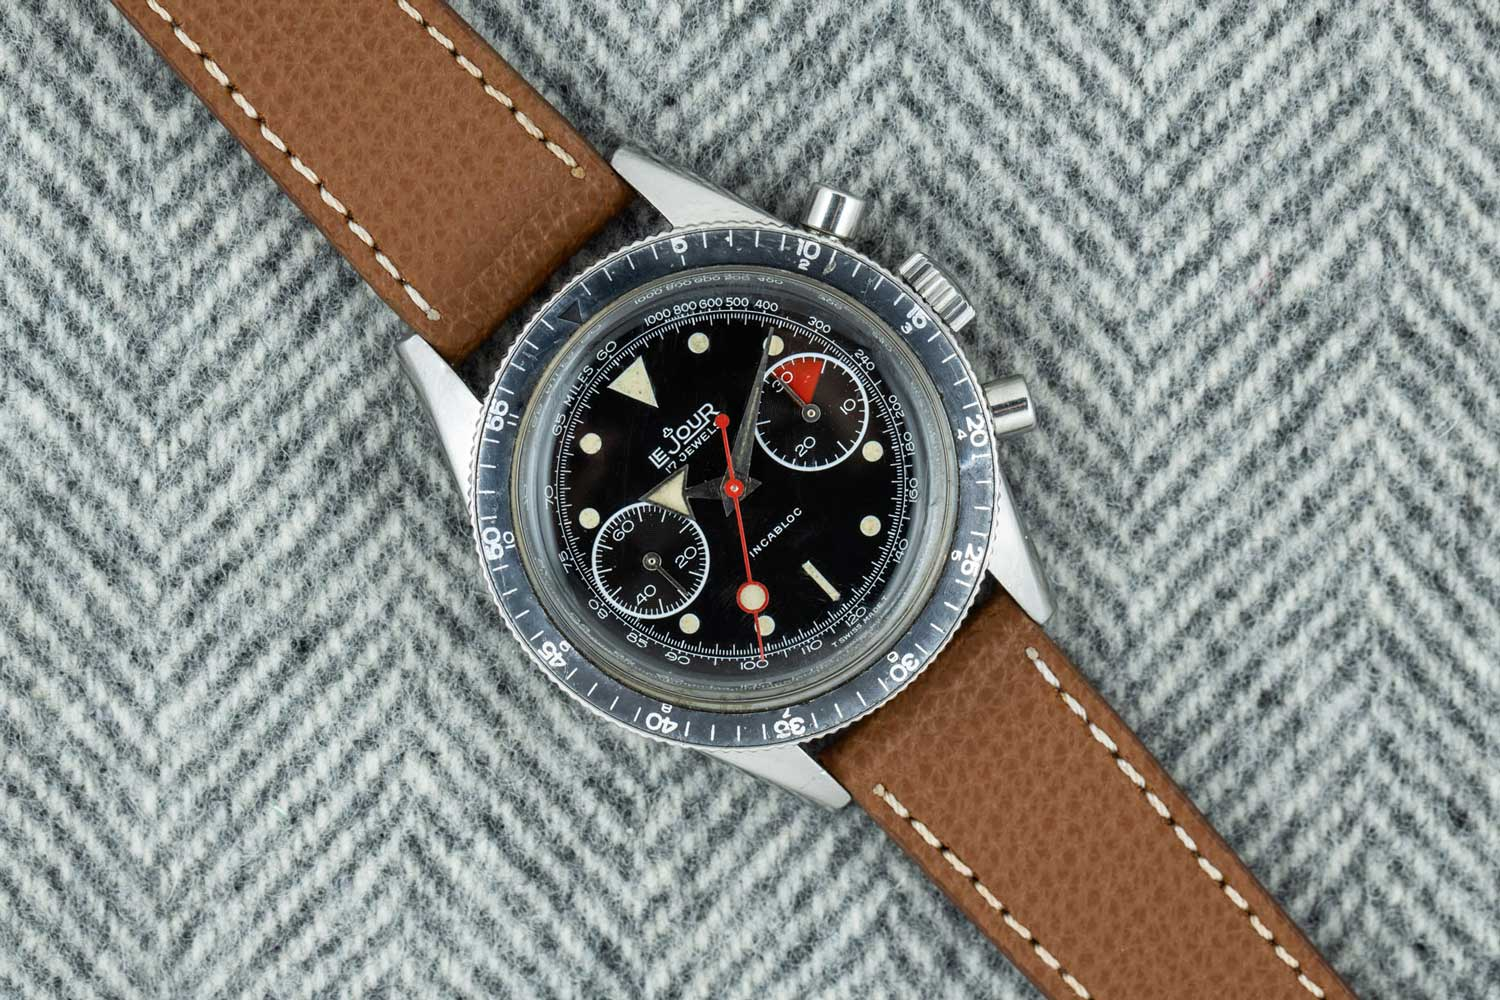 """The LeJour """"Broad Arrow"""" Chronograph has a faded bezel, an arrowhead hour hand and a giant lollipop on the red seconds hand.(Image: AnalogShift.com)"""